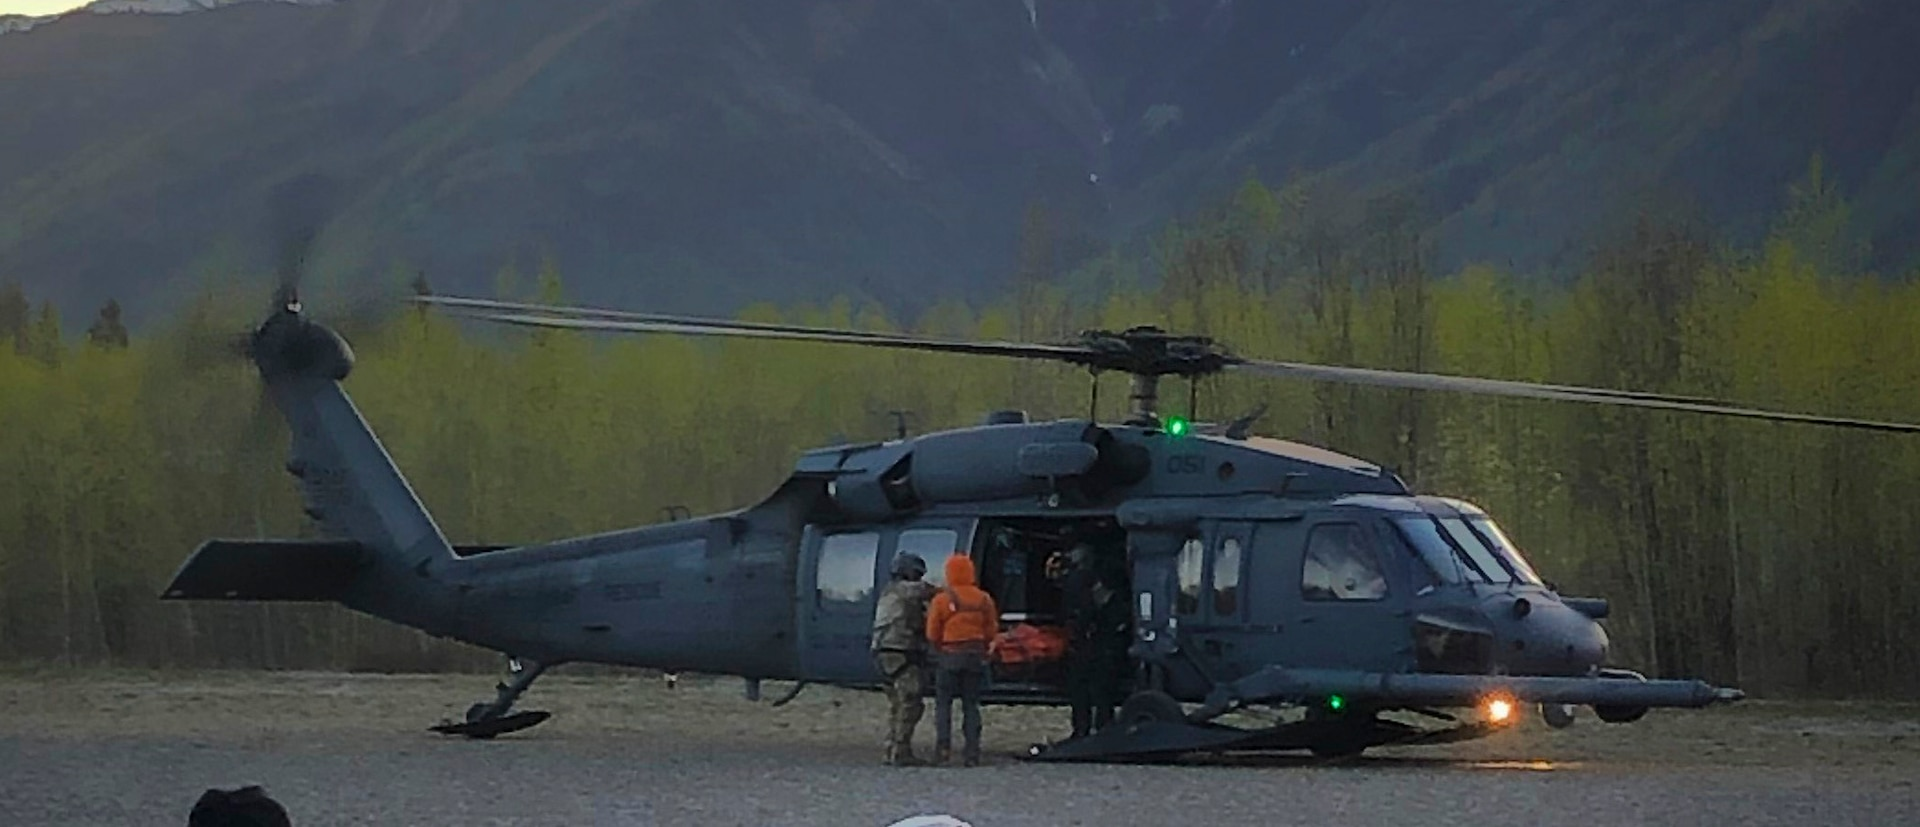 Pararescue personnel with the Alaska Air National Guard's 210th Rescue Squadron used an HH-60 Pave Hawk helicopter like this one in the search for 12 mountaineers stranded in poor weather on Klutlan Glacier southeast of Mt. Bona in Wrangell-St Elias National Park. The mountaineers were rescued June 1 after the 1st Battalion, 207th Aviation Regiment, dispatched an Alaska Army National Guard CH-47 Chinook with a paramedic from the 2nd Battalion, 211 Aviation Regiment.